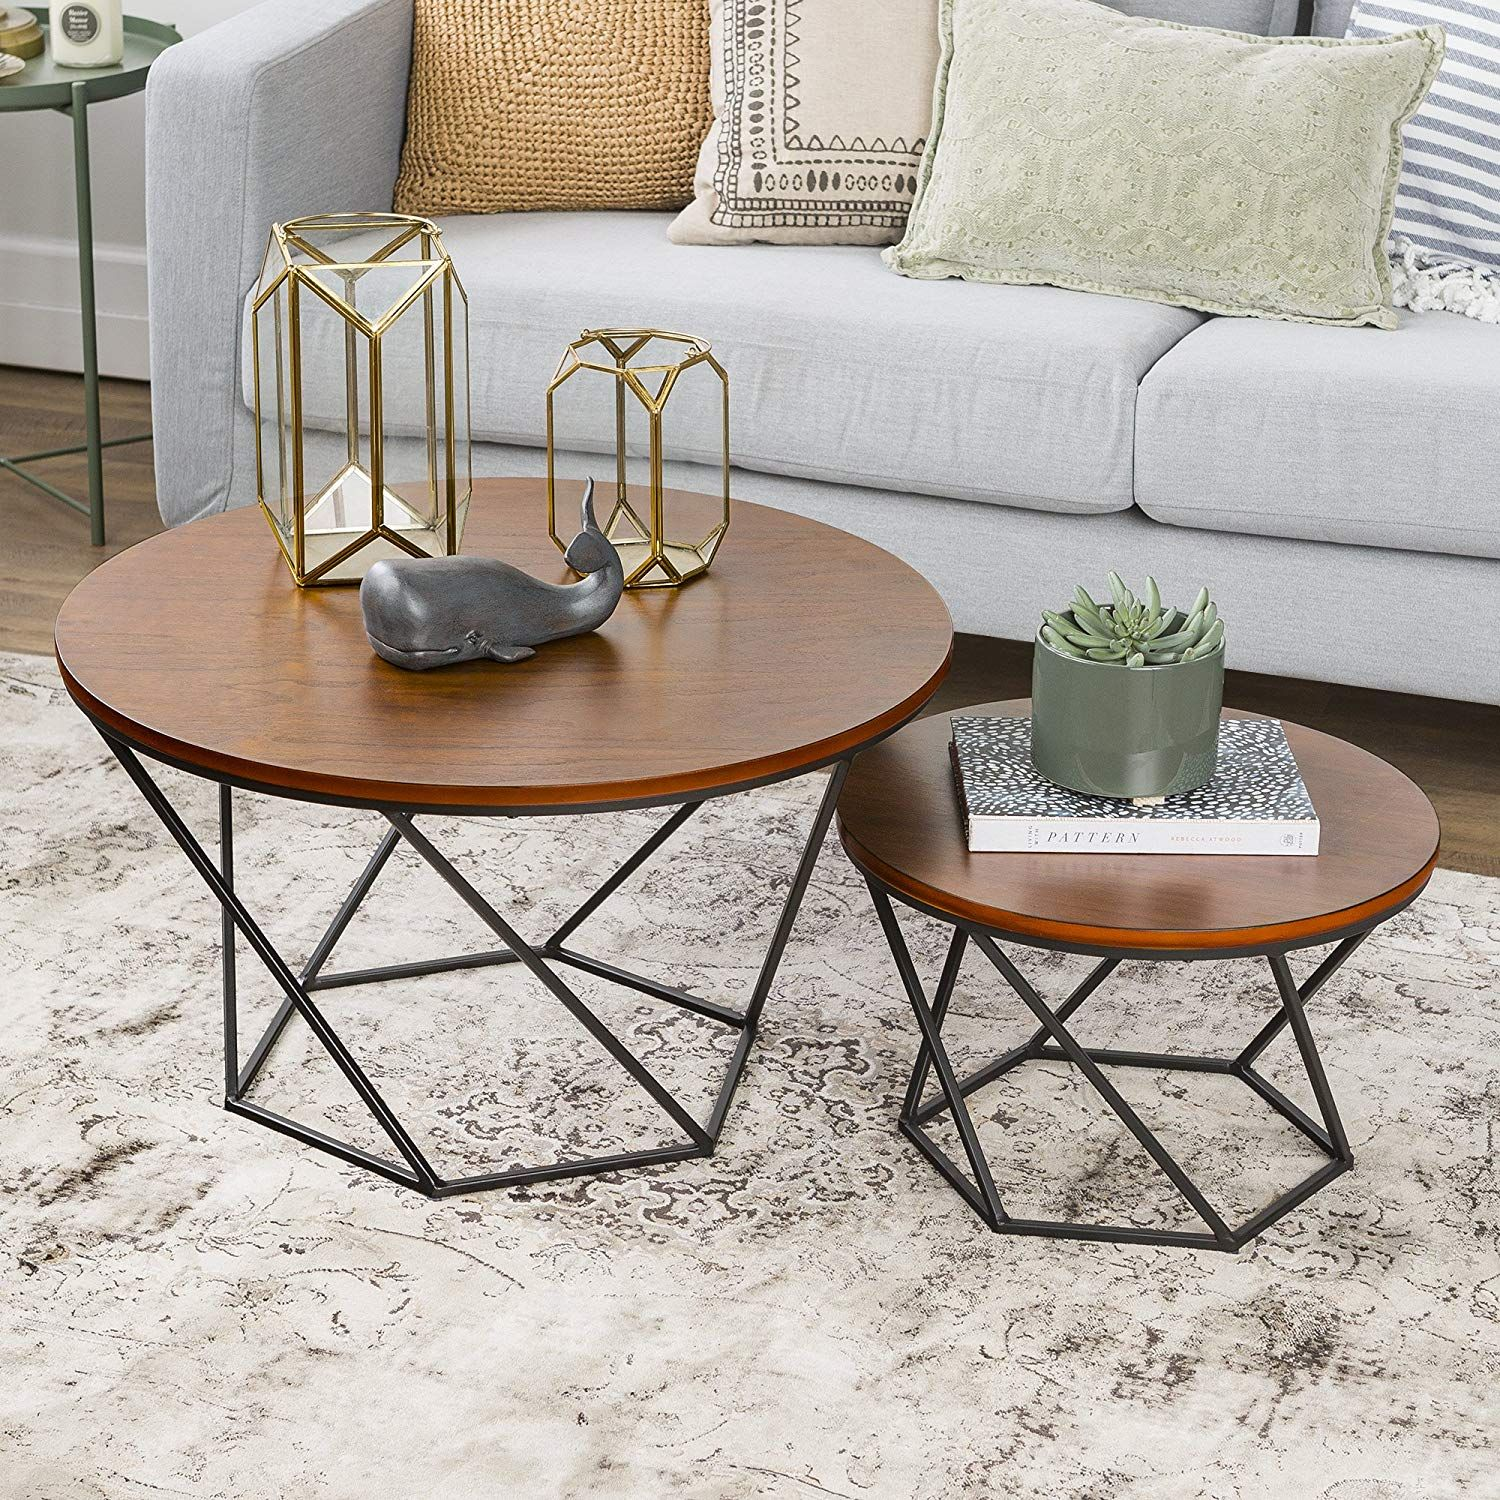 Geometric Wood Nesting Coffee Tables Structural With A Hint Of